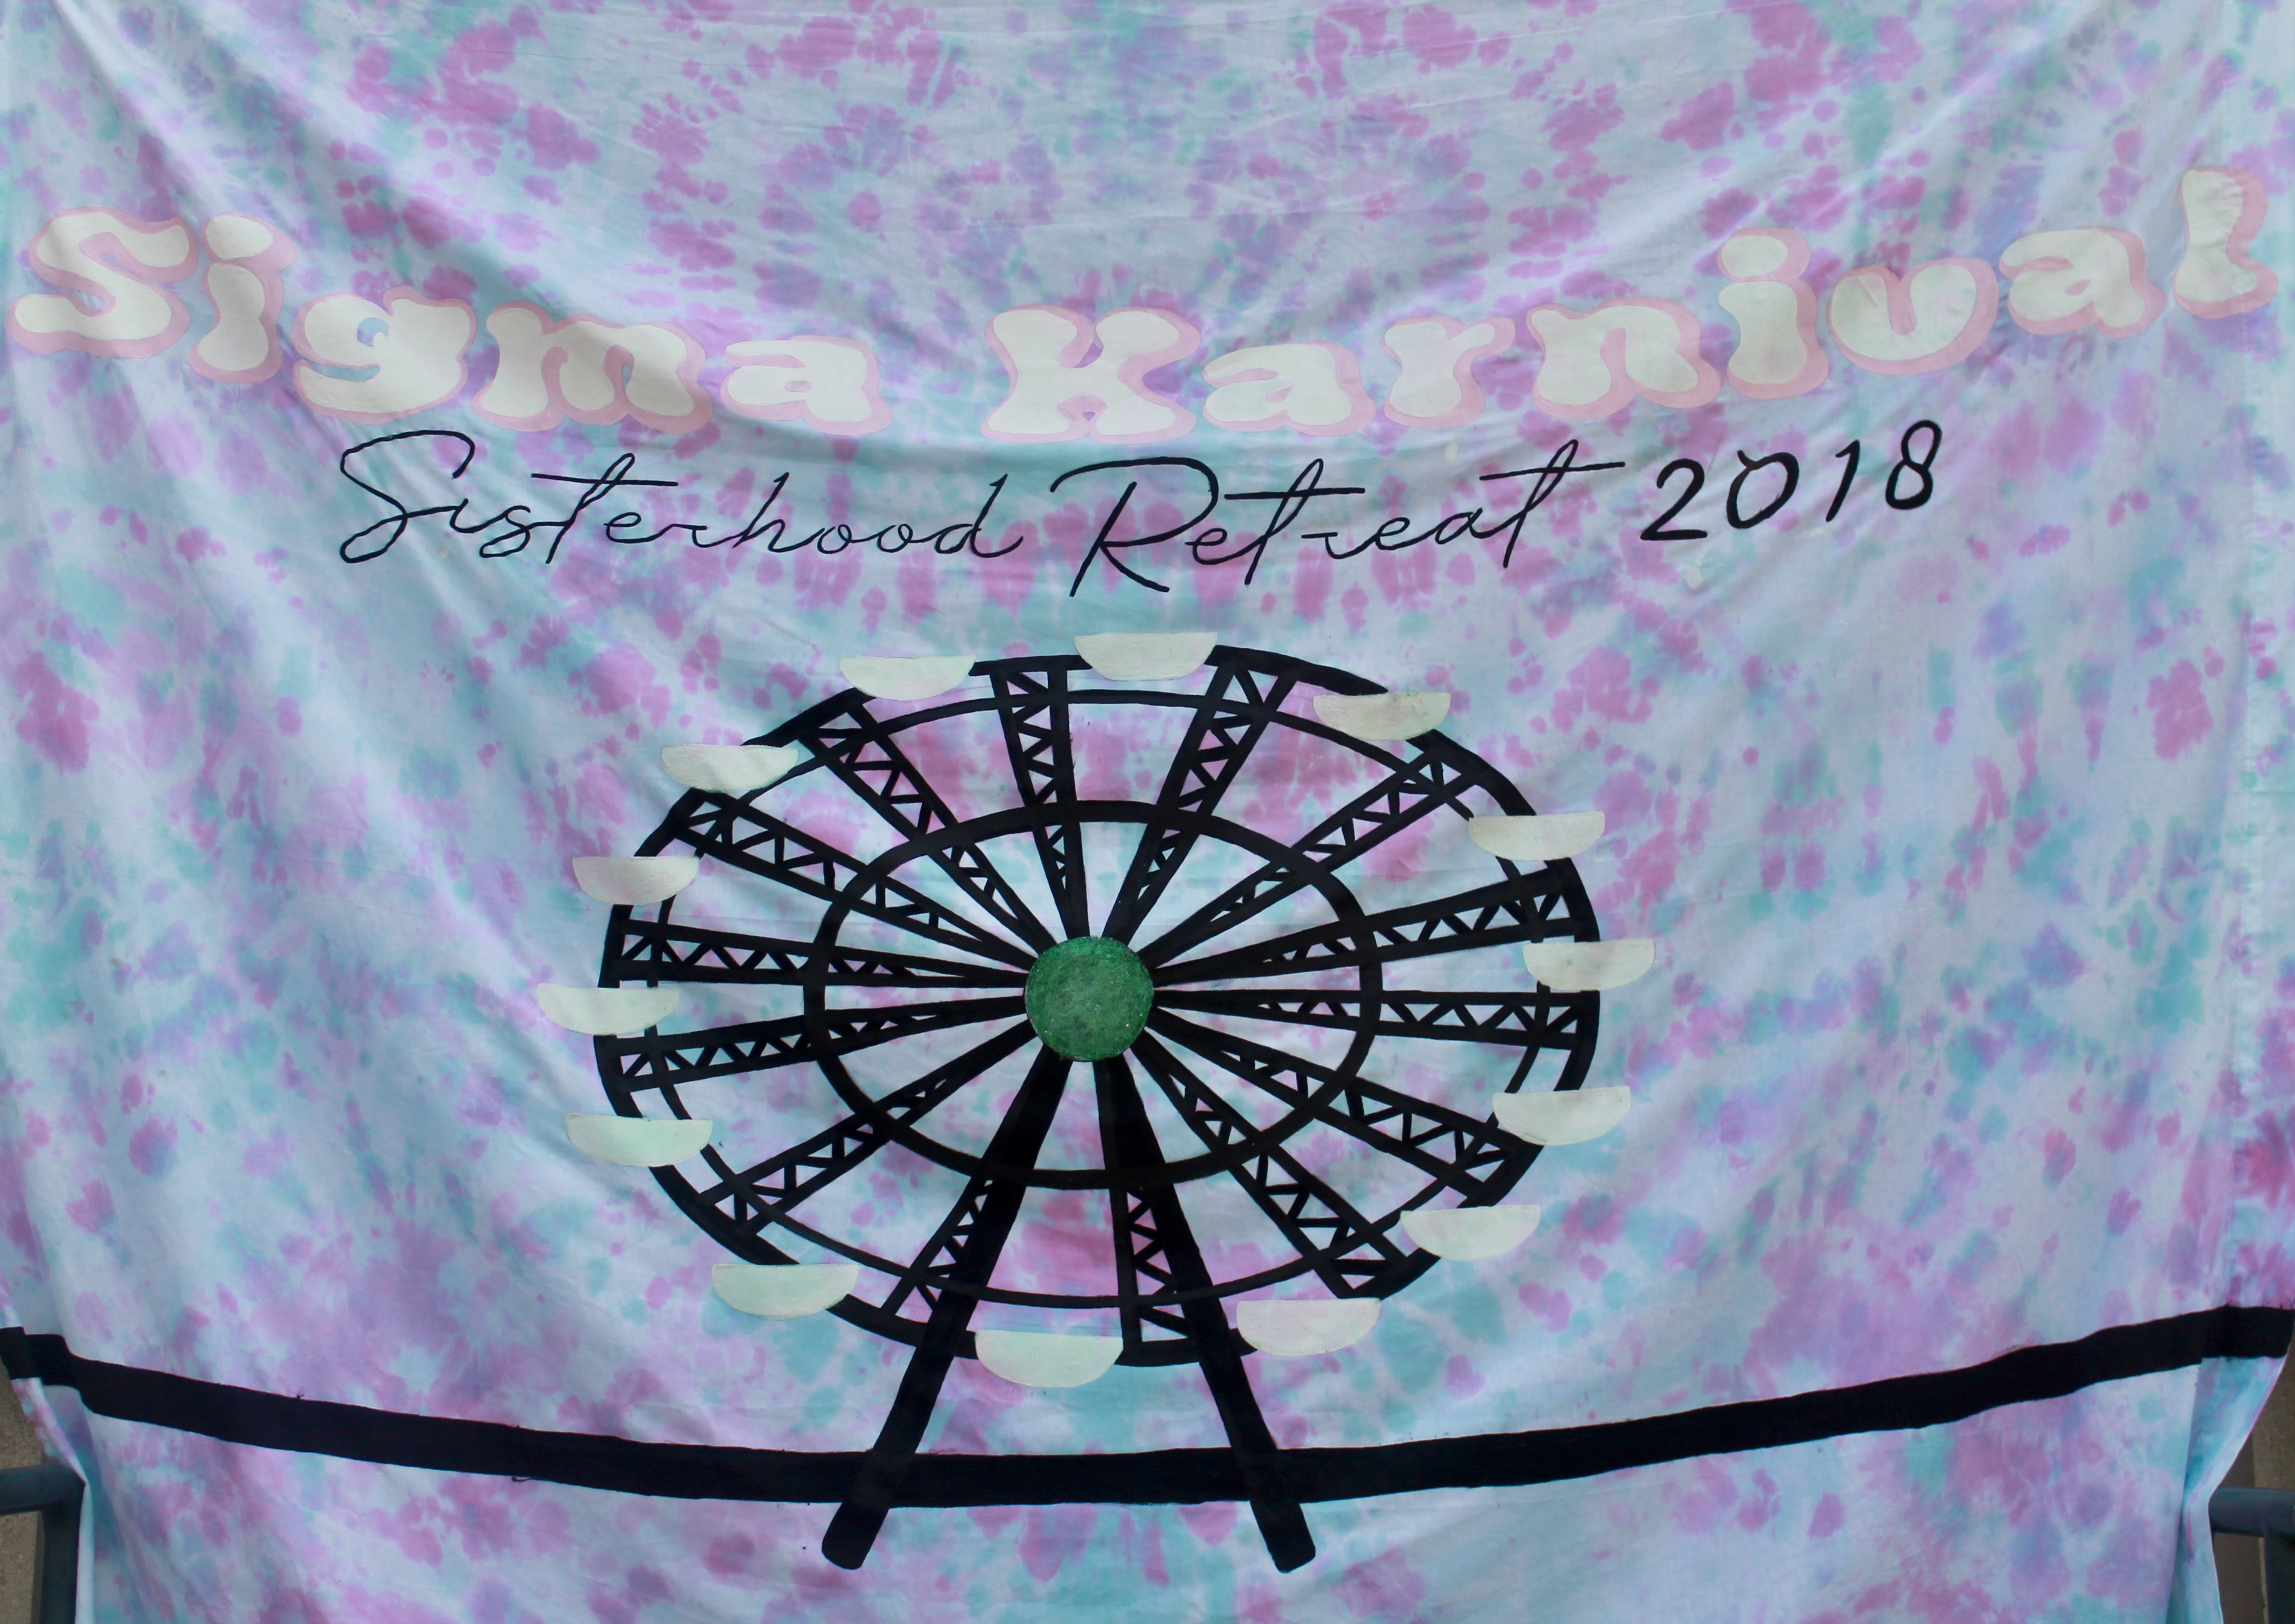 Sisterhood Retreat 2018